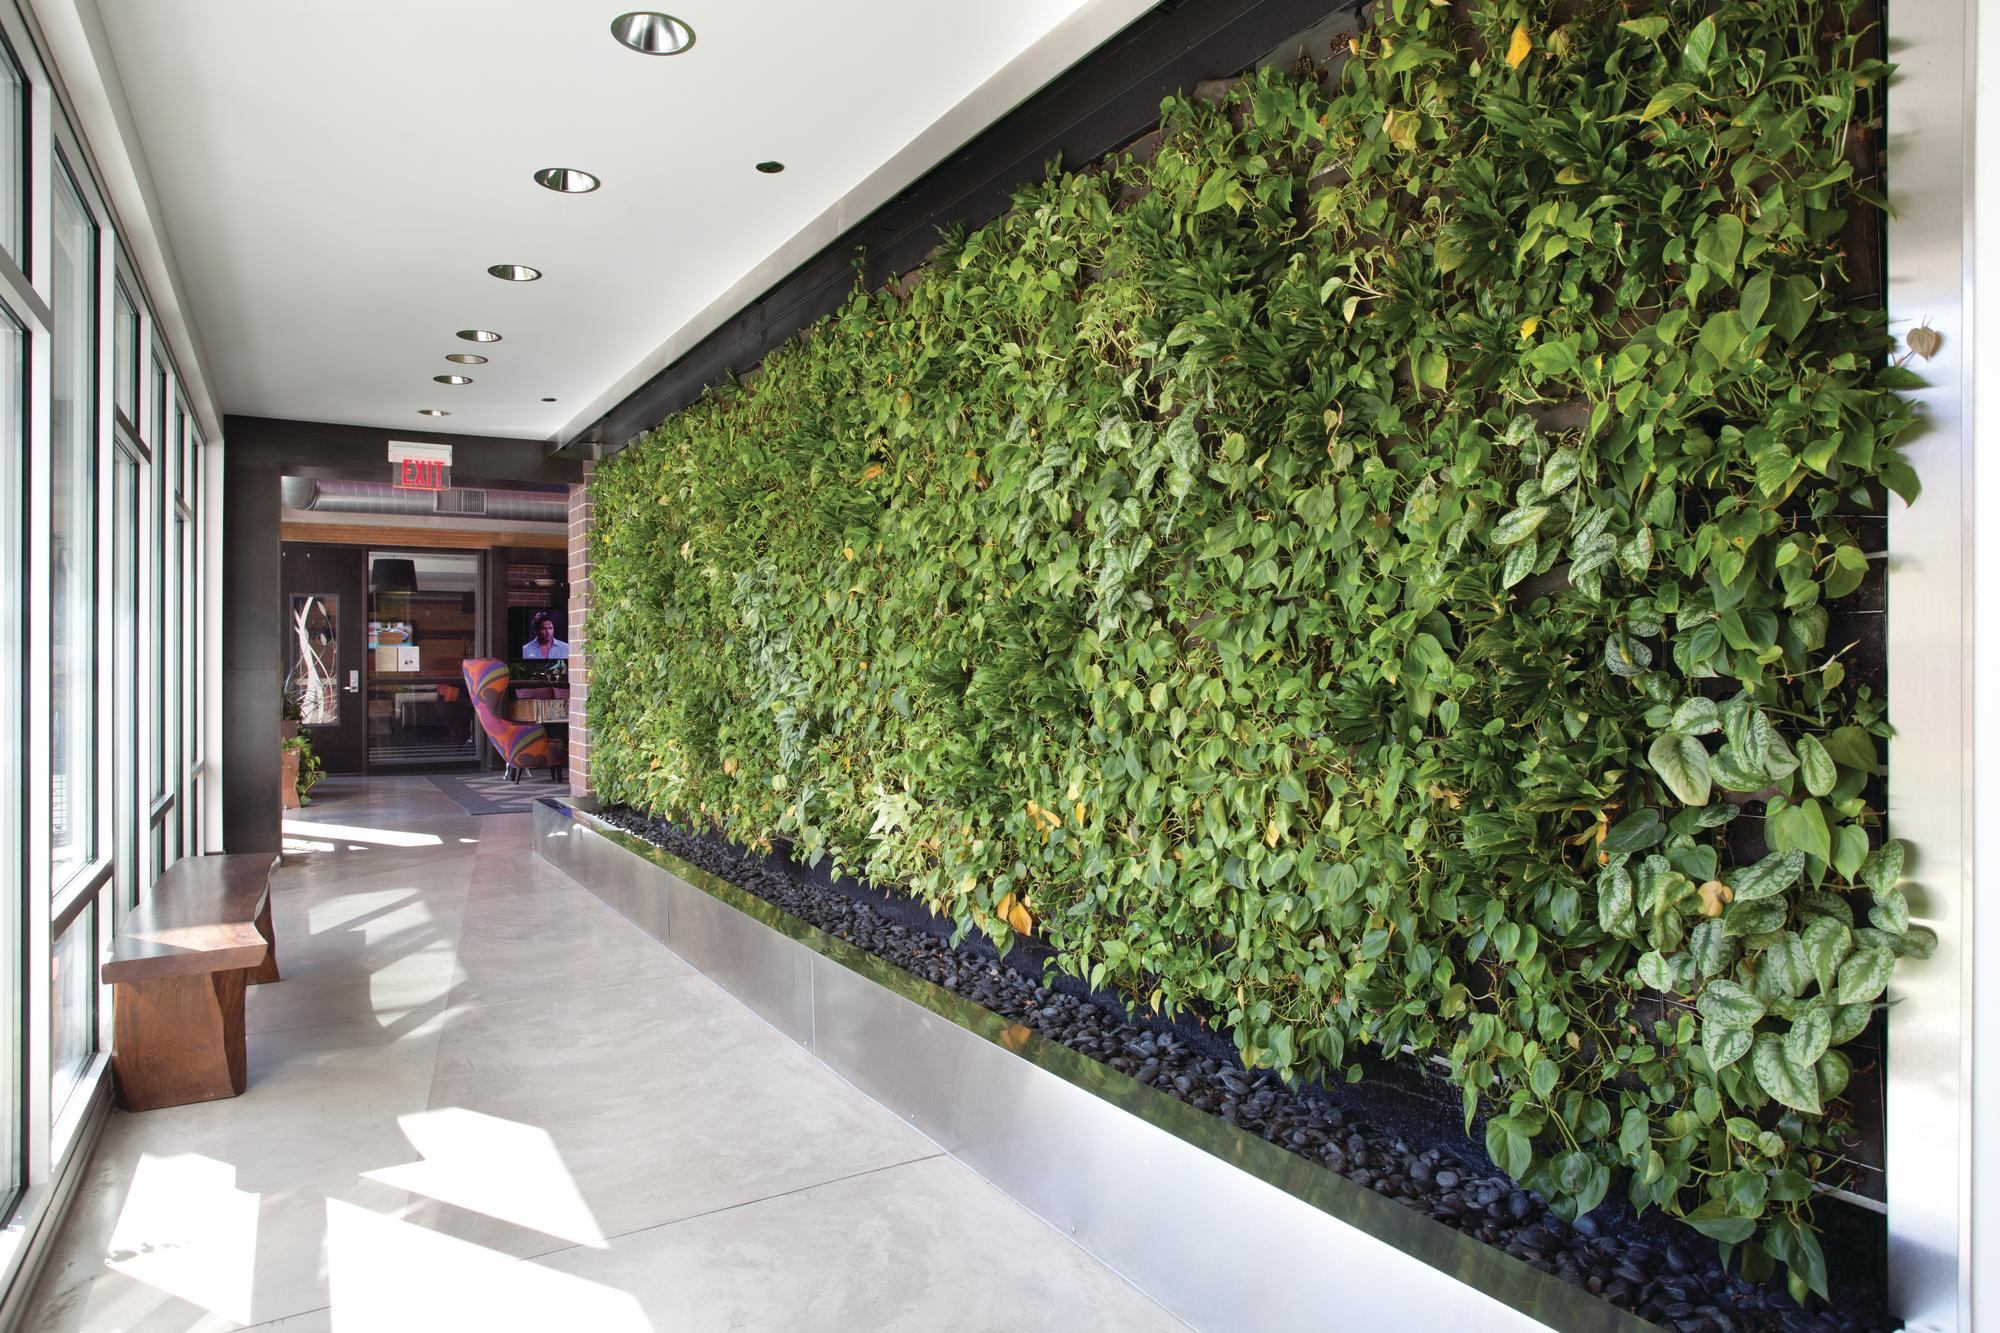 Green Roof and Wall Market Expected to Grow EcoBuilding